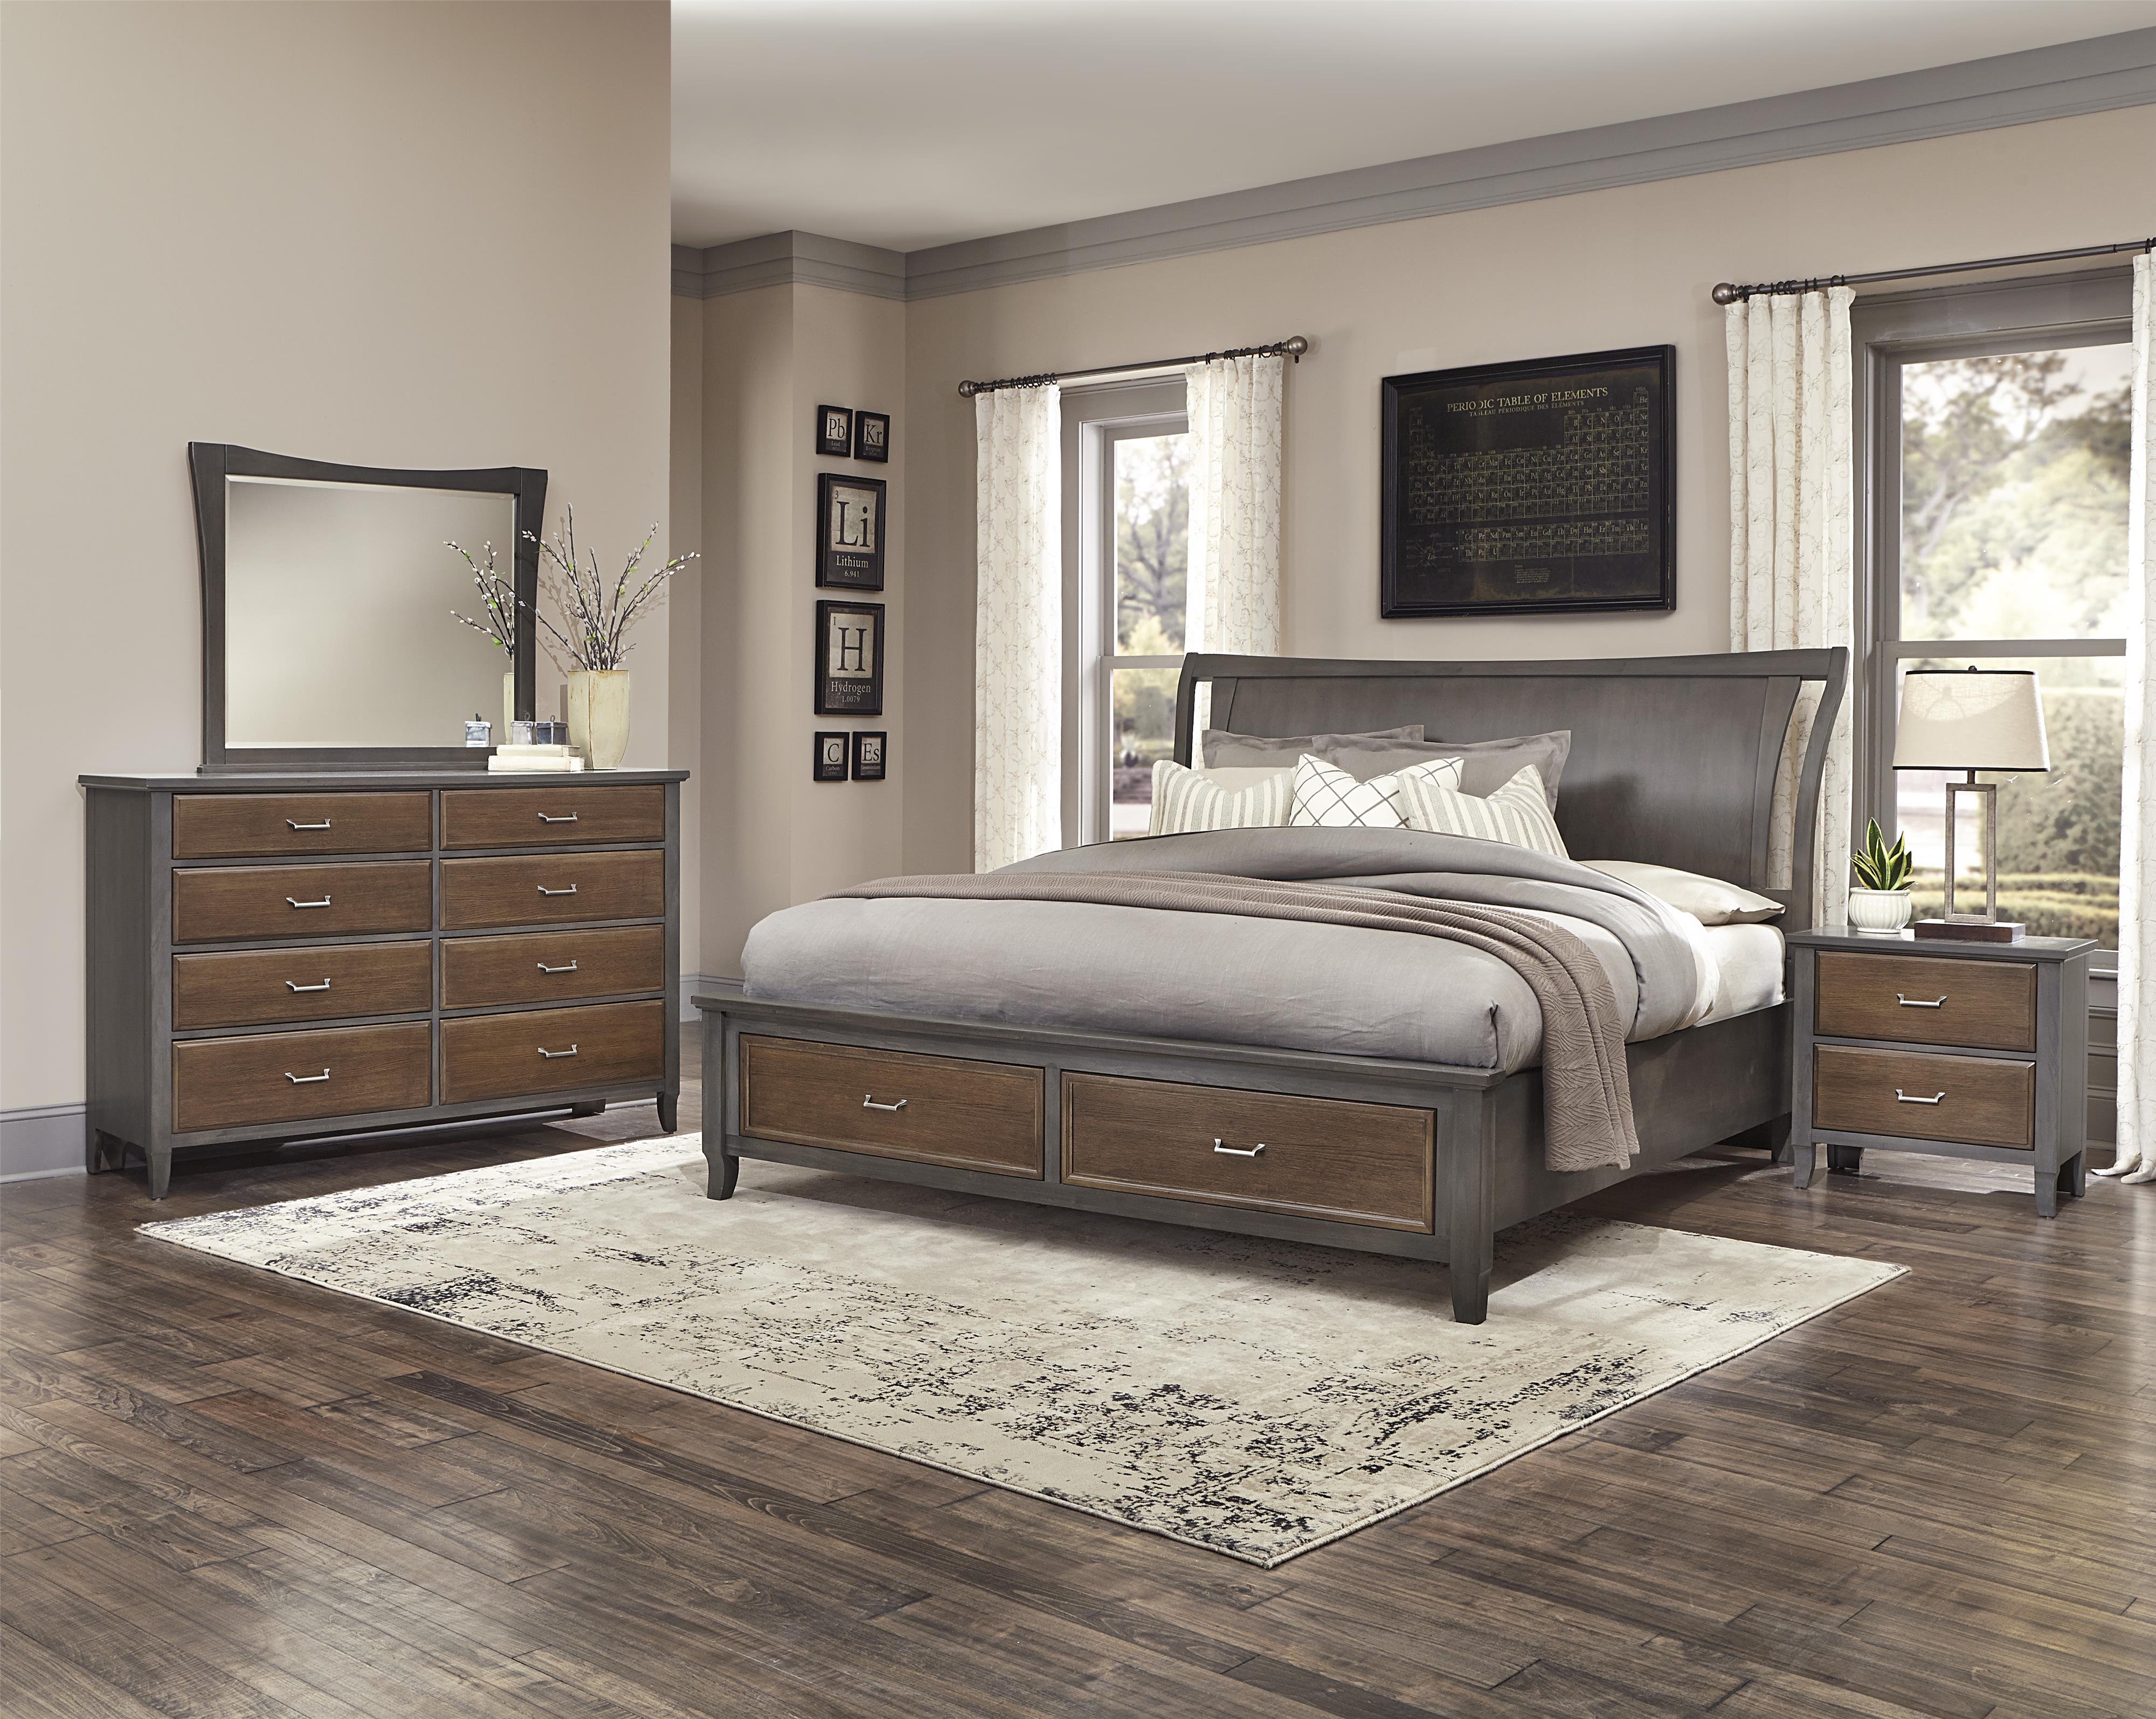 Vaughan Bassett Commentary King Bedroom Group - Item Number: 394 K Bedroom Group 7